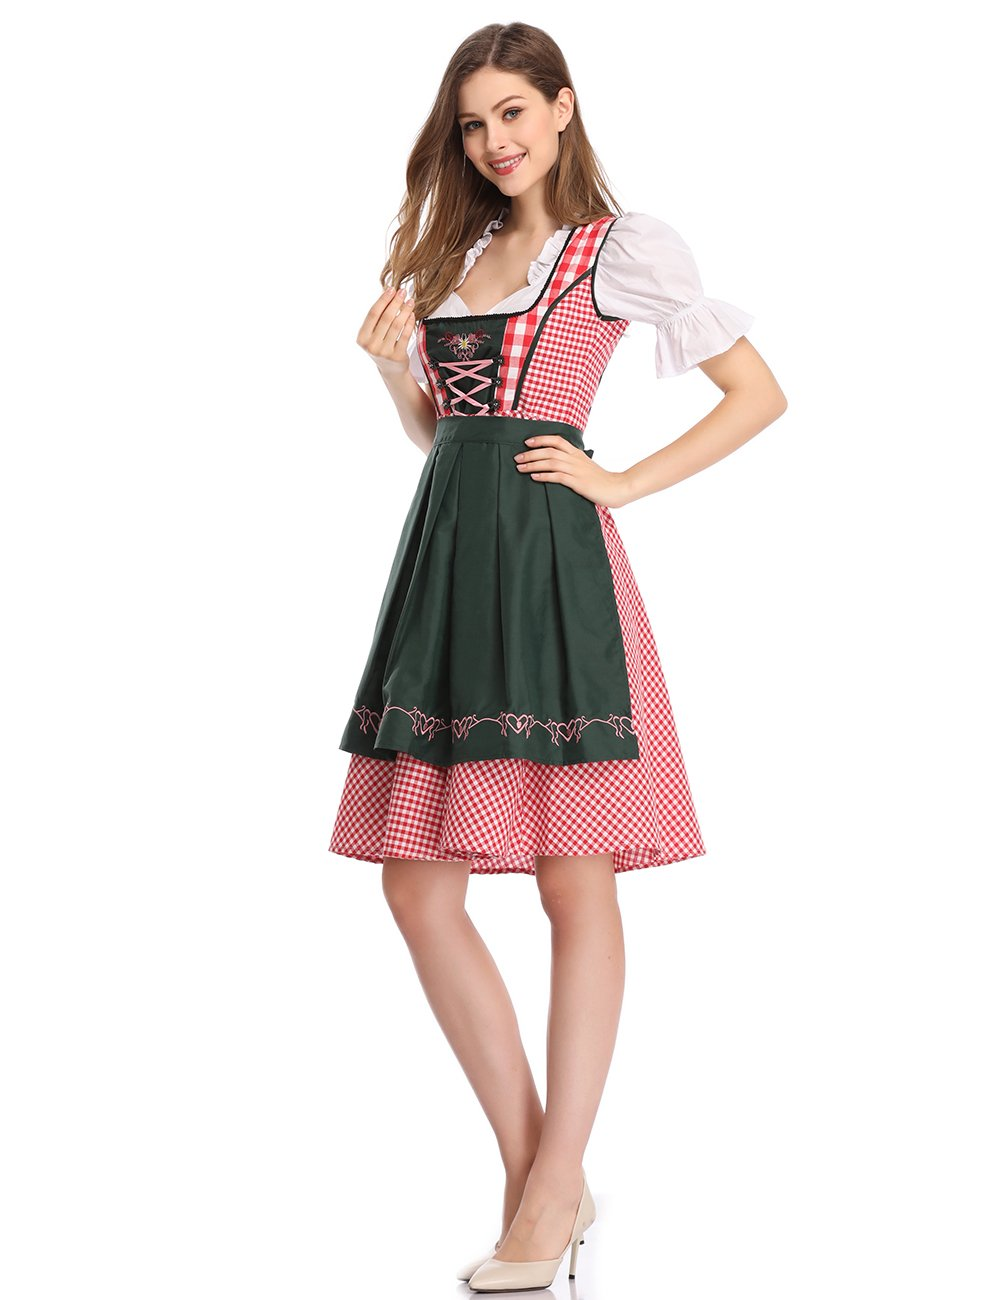 15d9f98604eba Clearlove Women Bavarian Dirndl Plus Size Dress 3-pieces with Apron and  Blouse Red Plaid 2XL